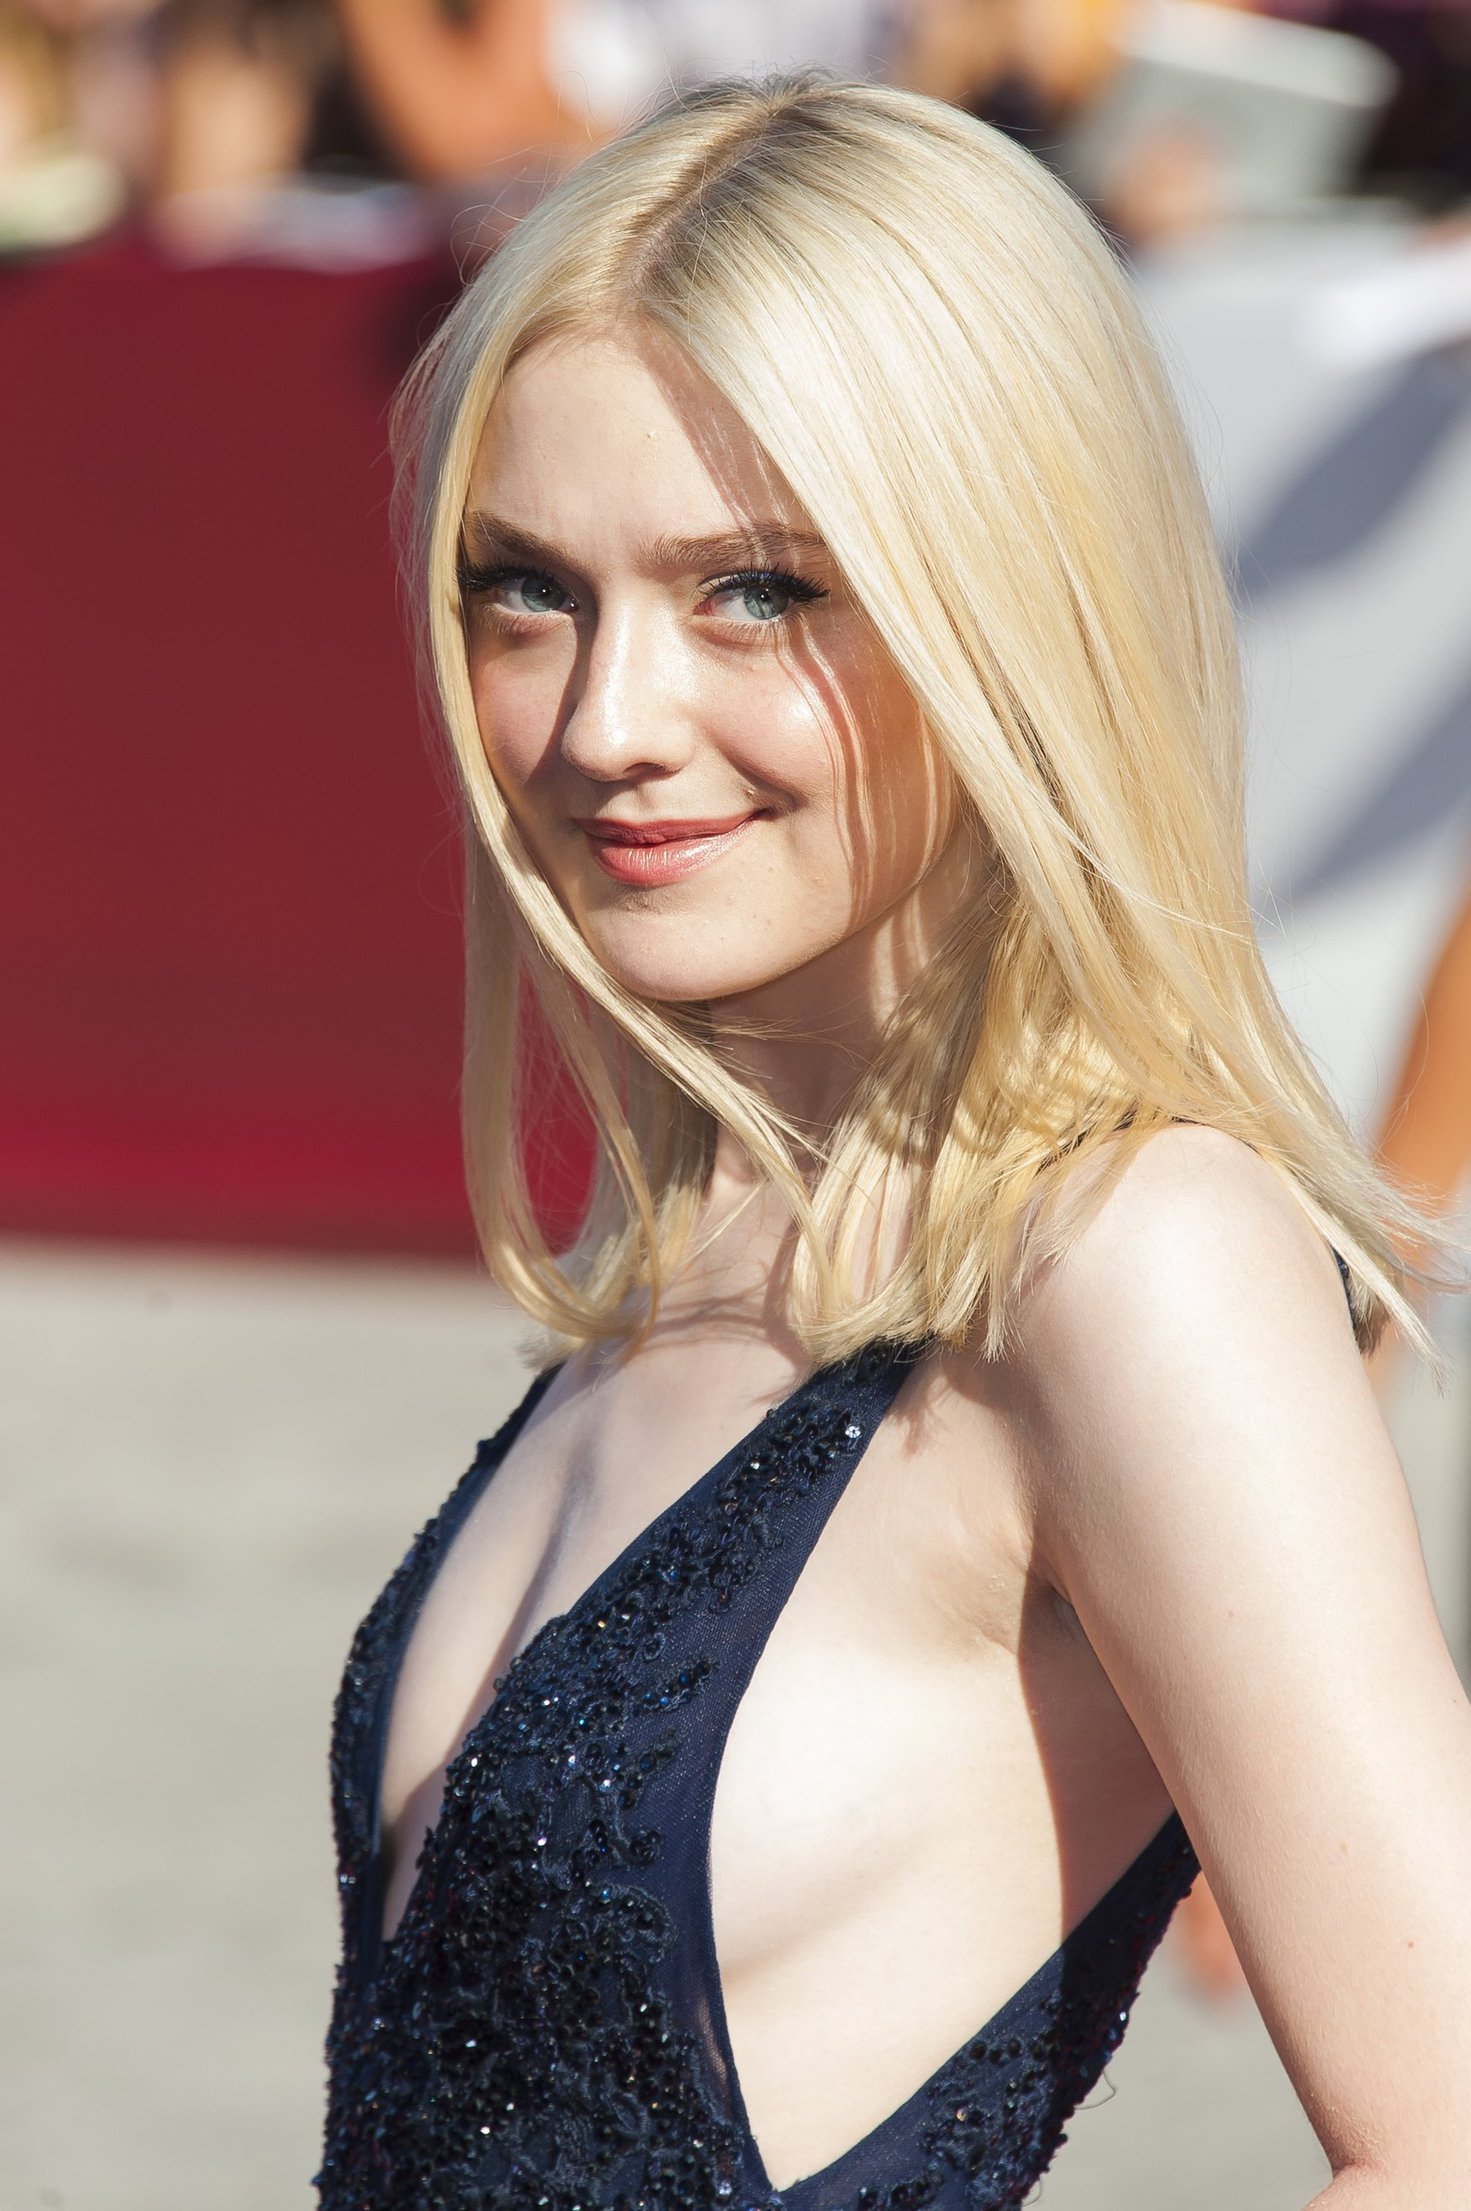 Erotica Elle Fanning naked (16 photo), Ass, Hot, Instagram, butt 2019